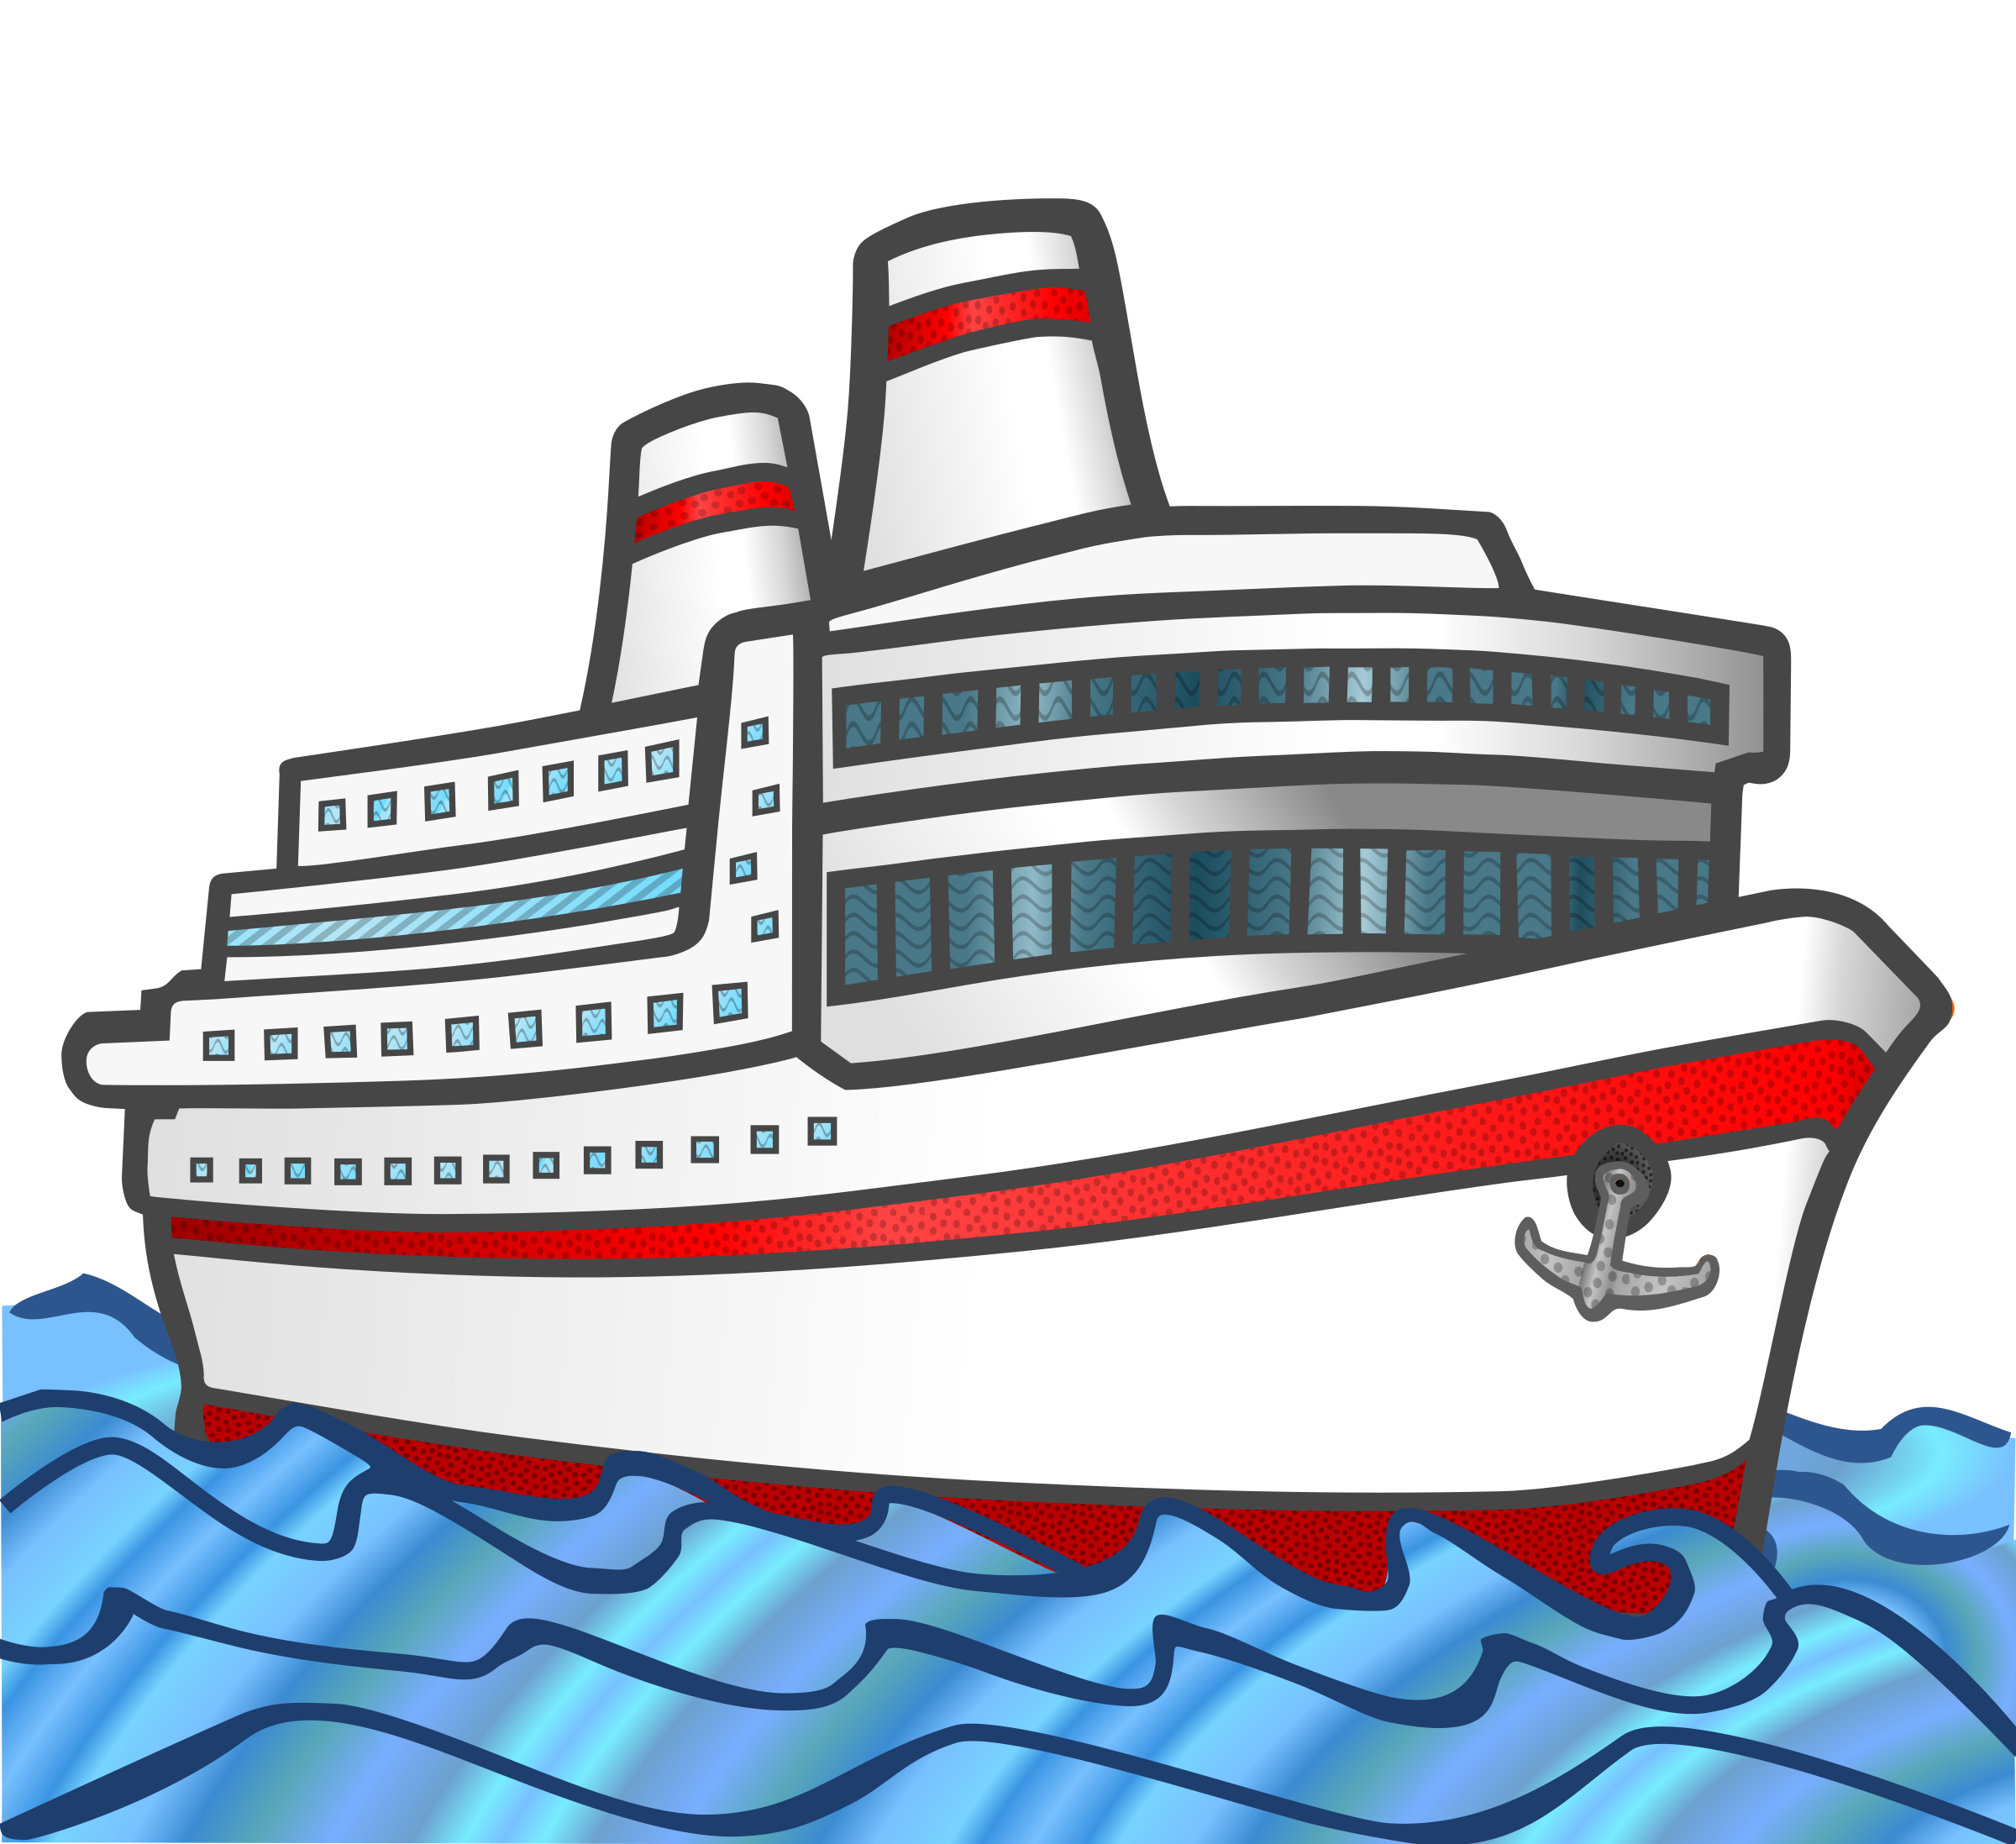 Boat Clipart for free download.